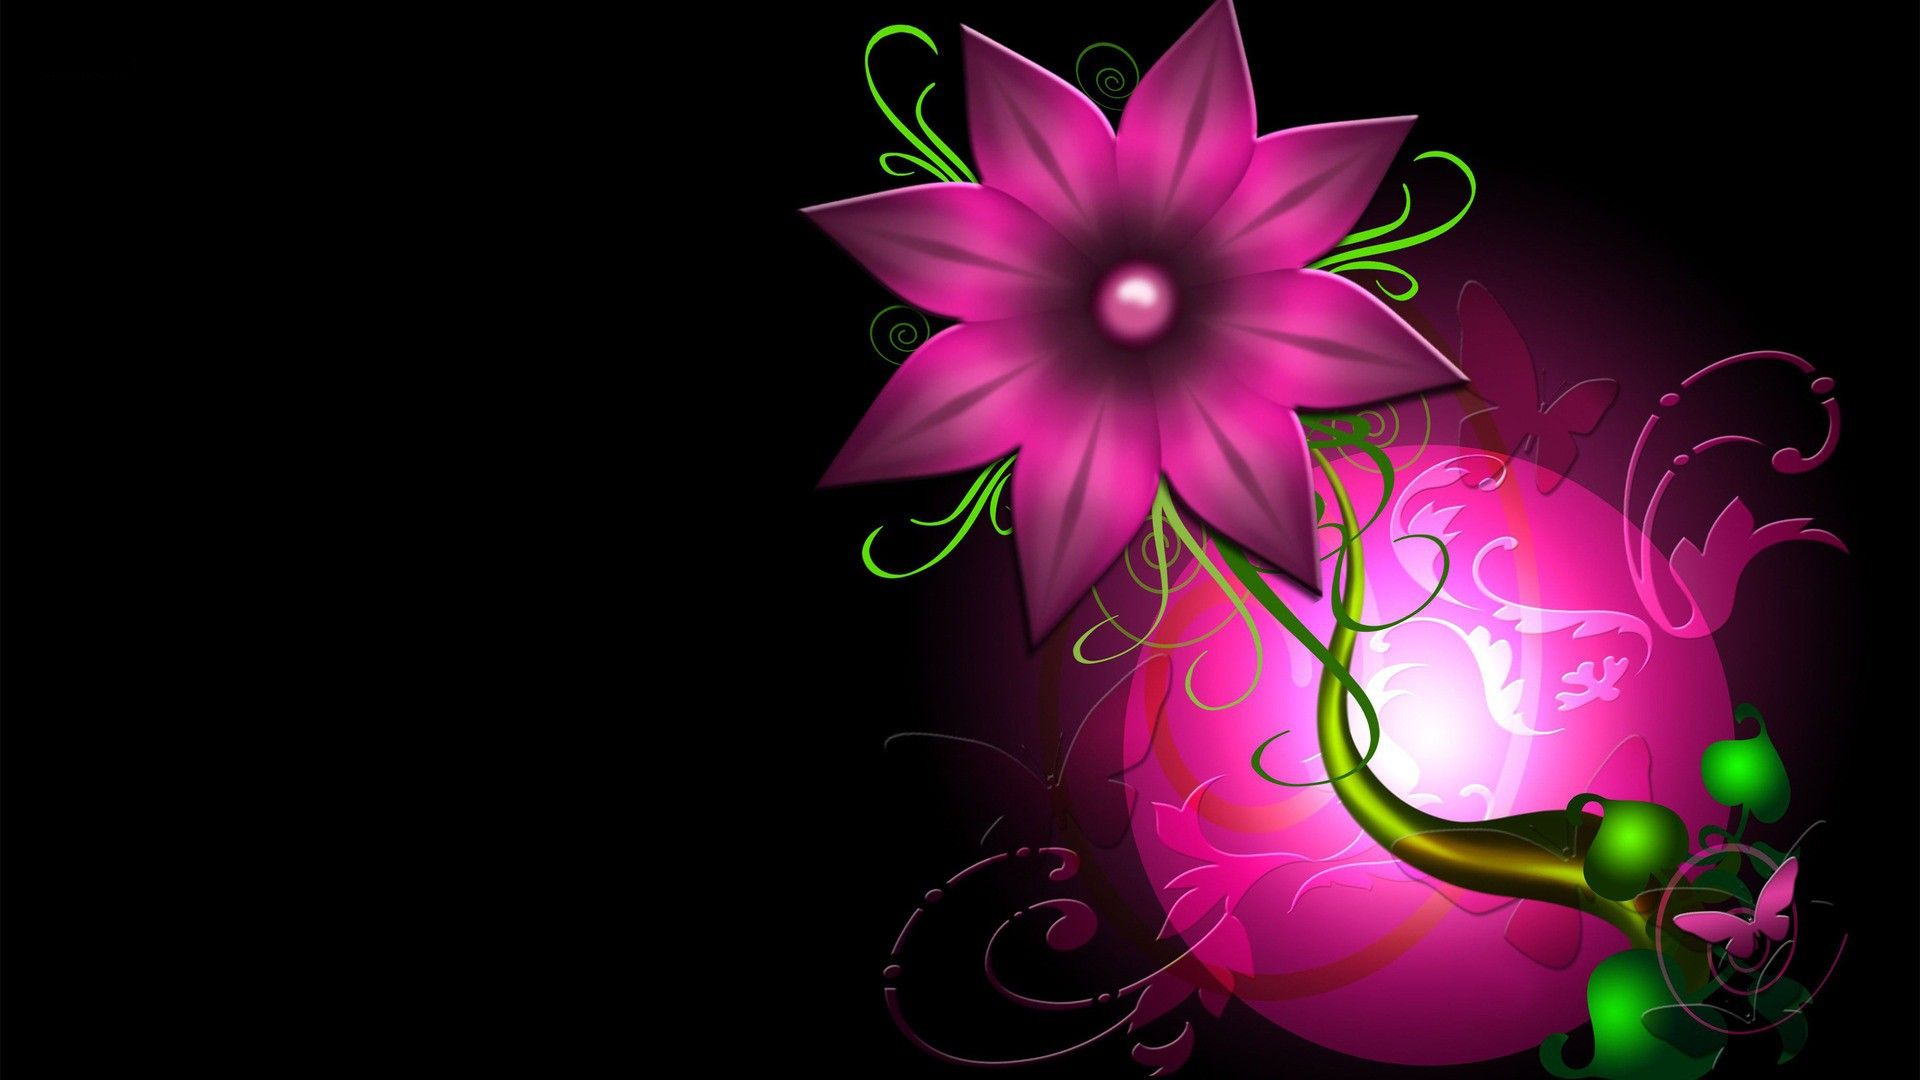 Pink Flower Hd Wallpapers 1080p Hd Wallpapers Wallpaper Iphone